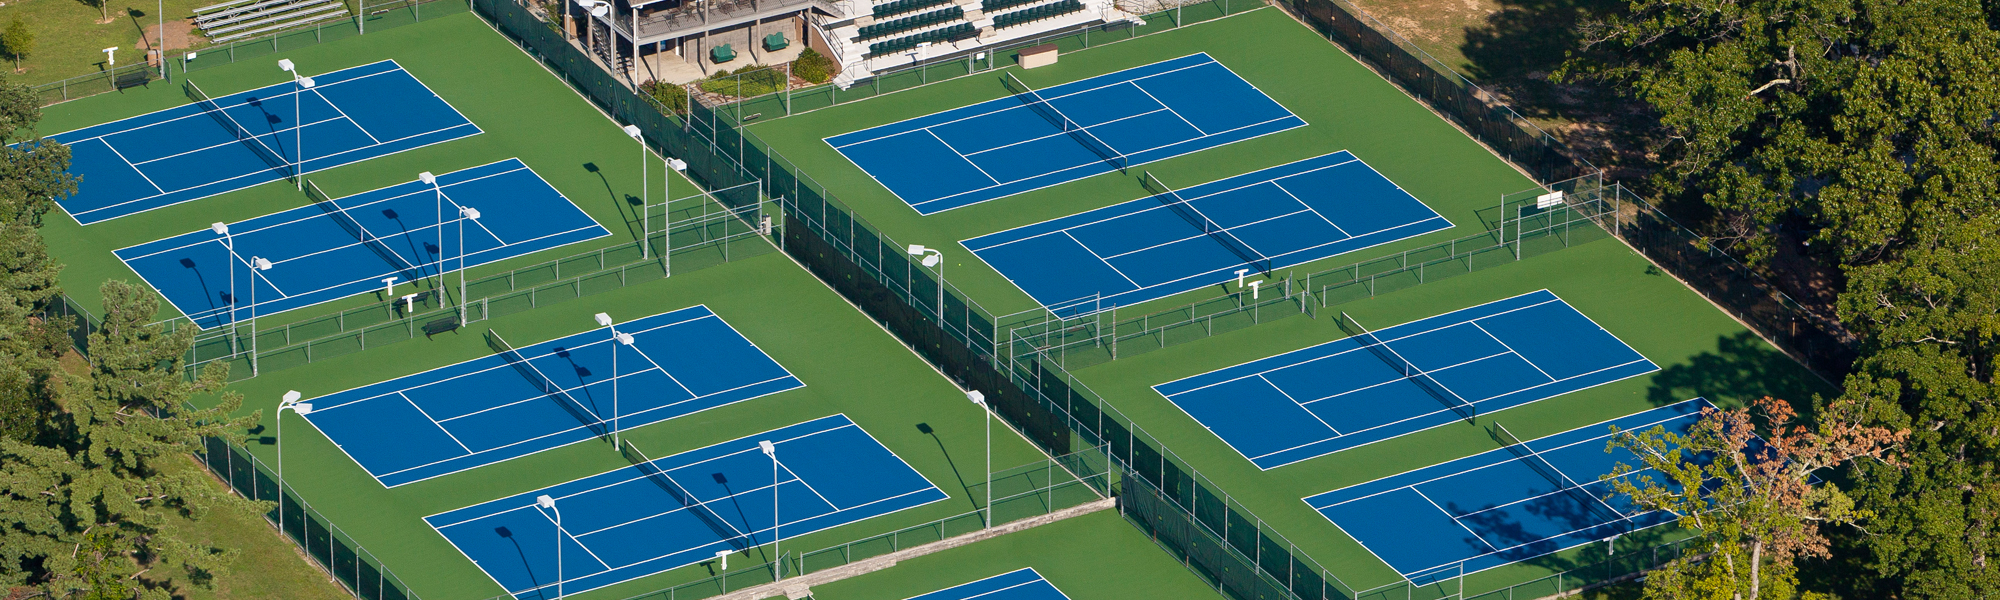 Tennis Court Repair Service